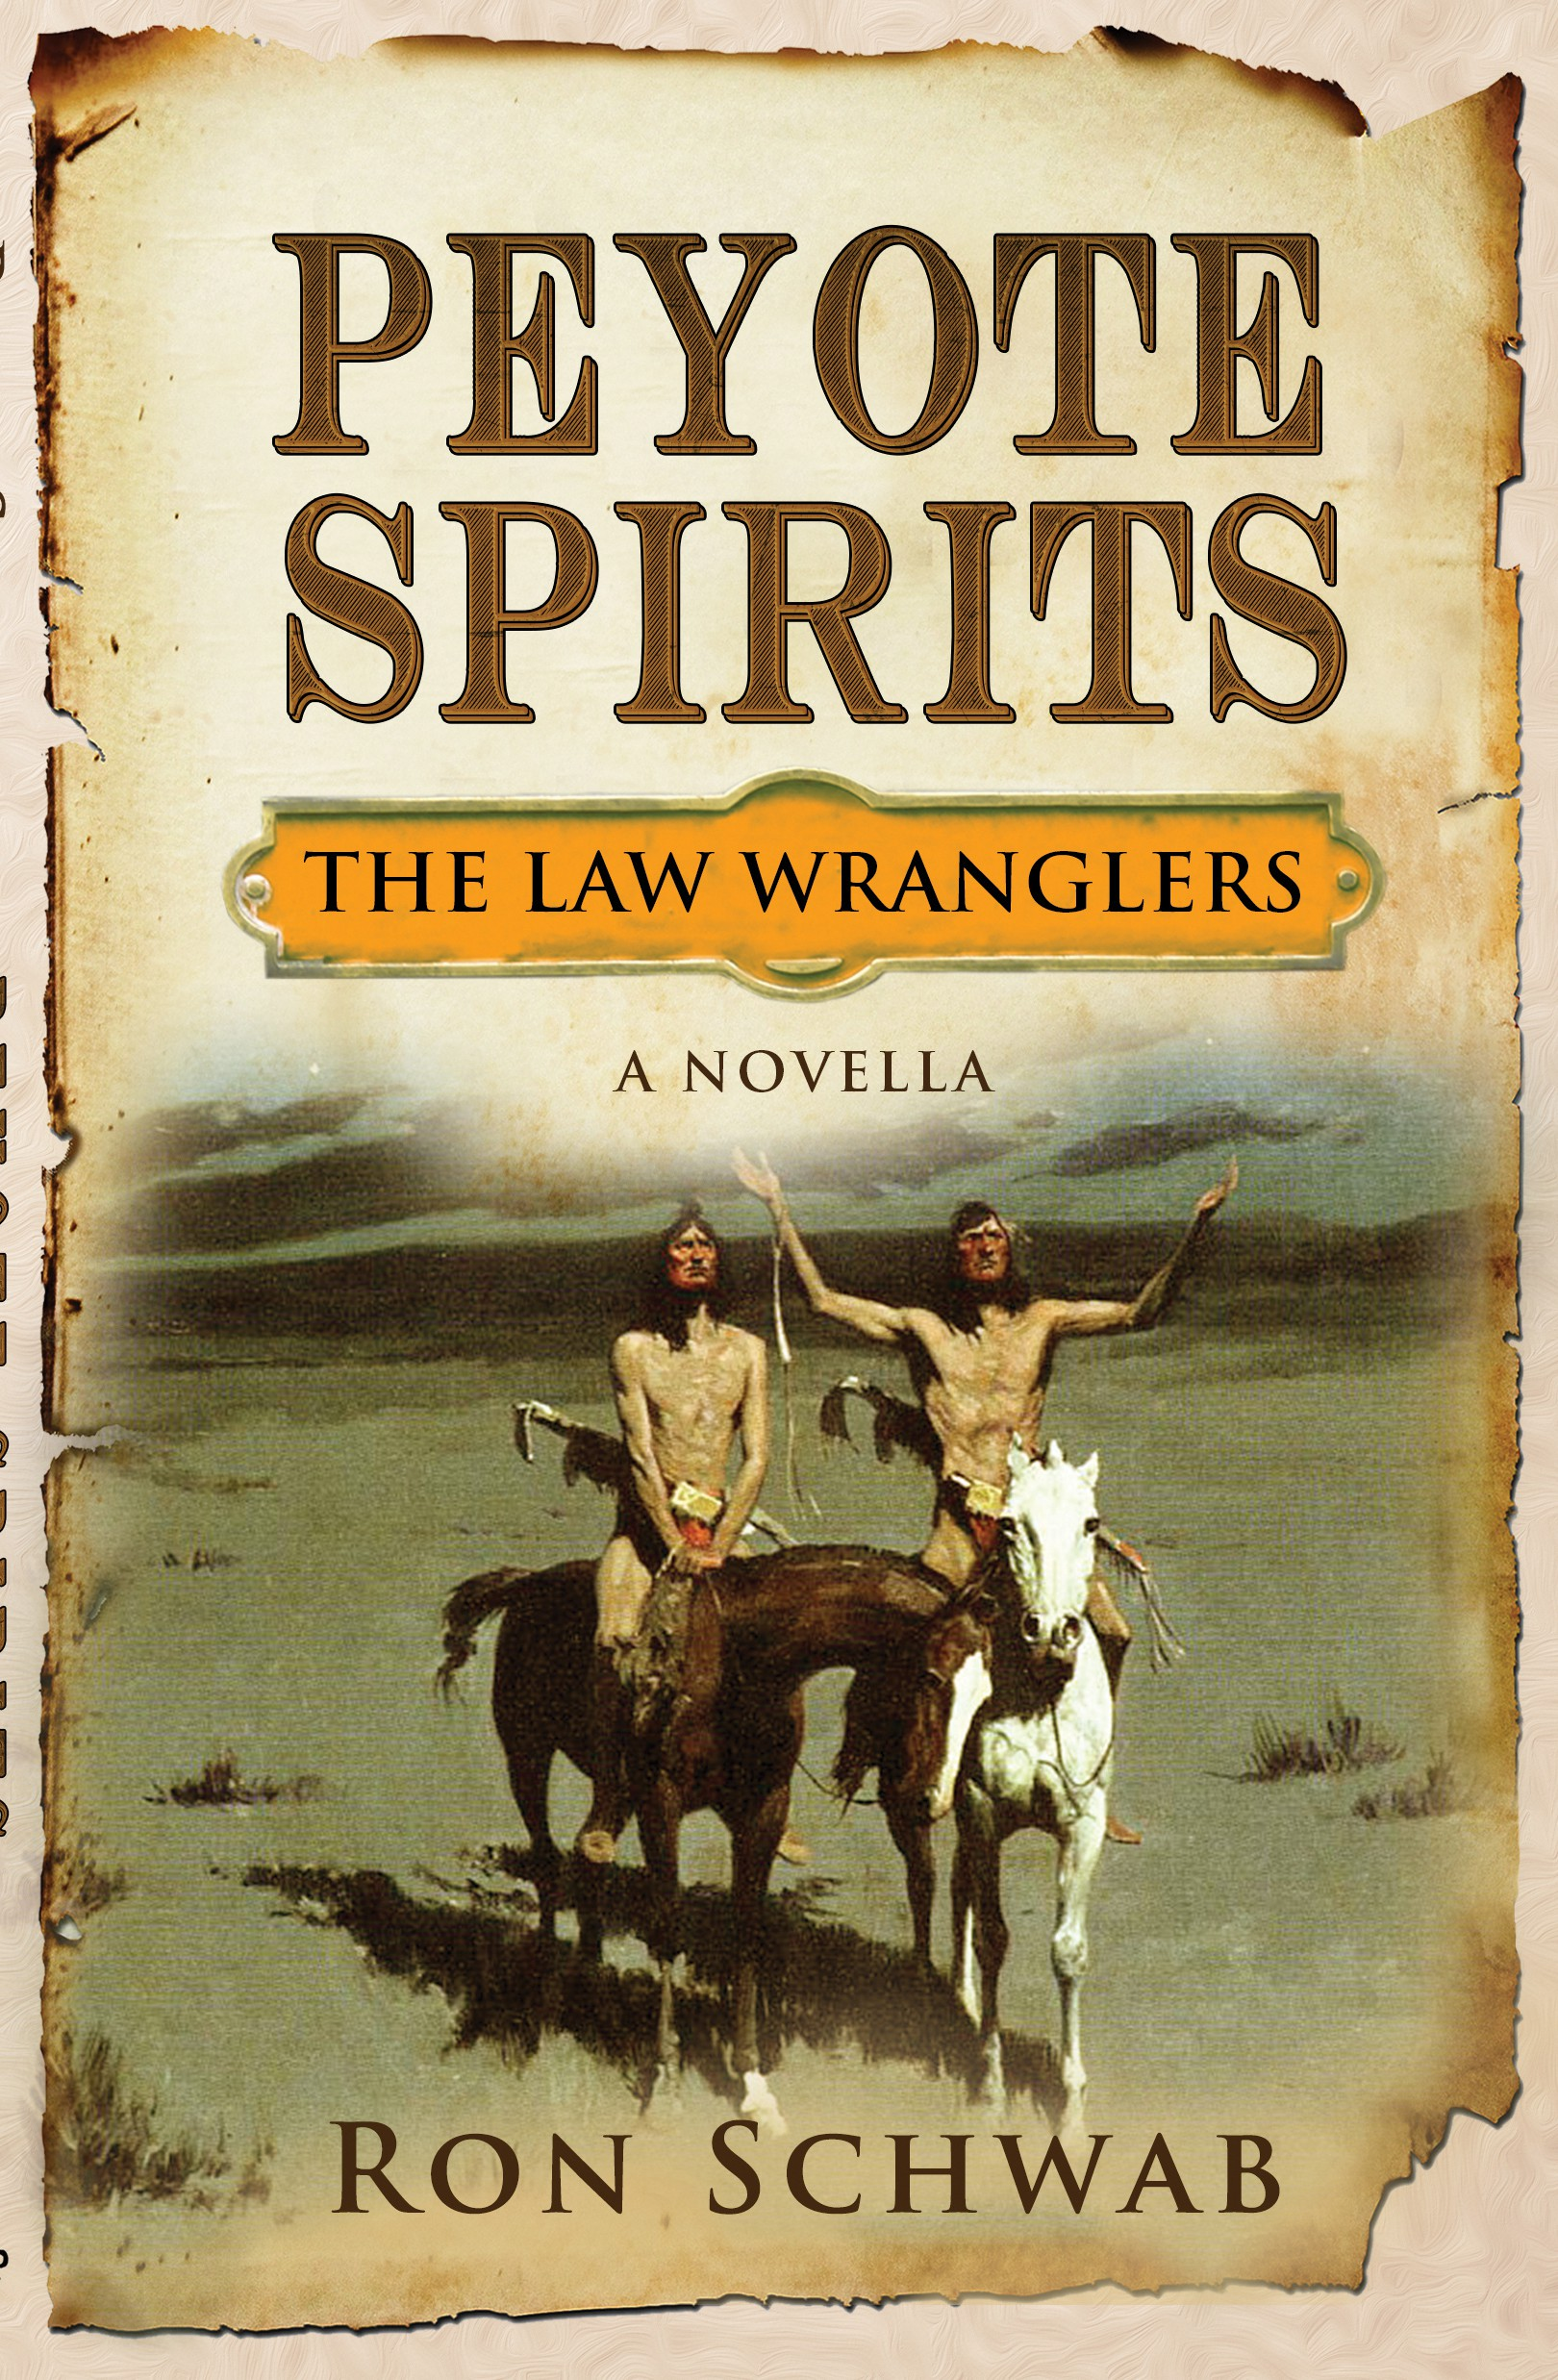 """Ebook and print cover for Law Wranglers novella, """"Peyote Spirits"""""""